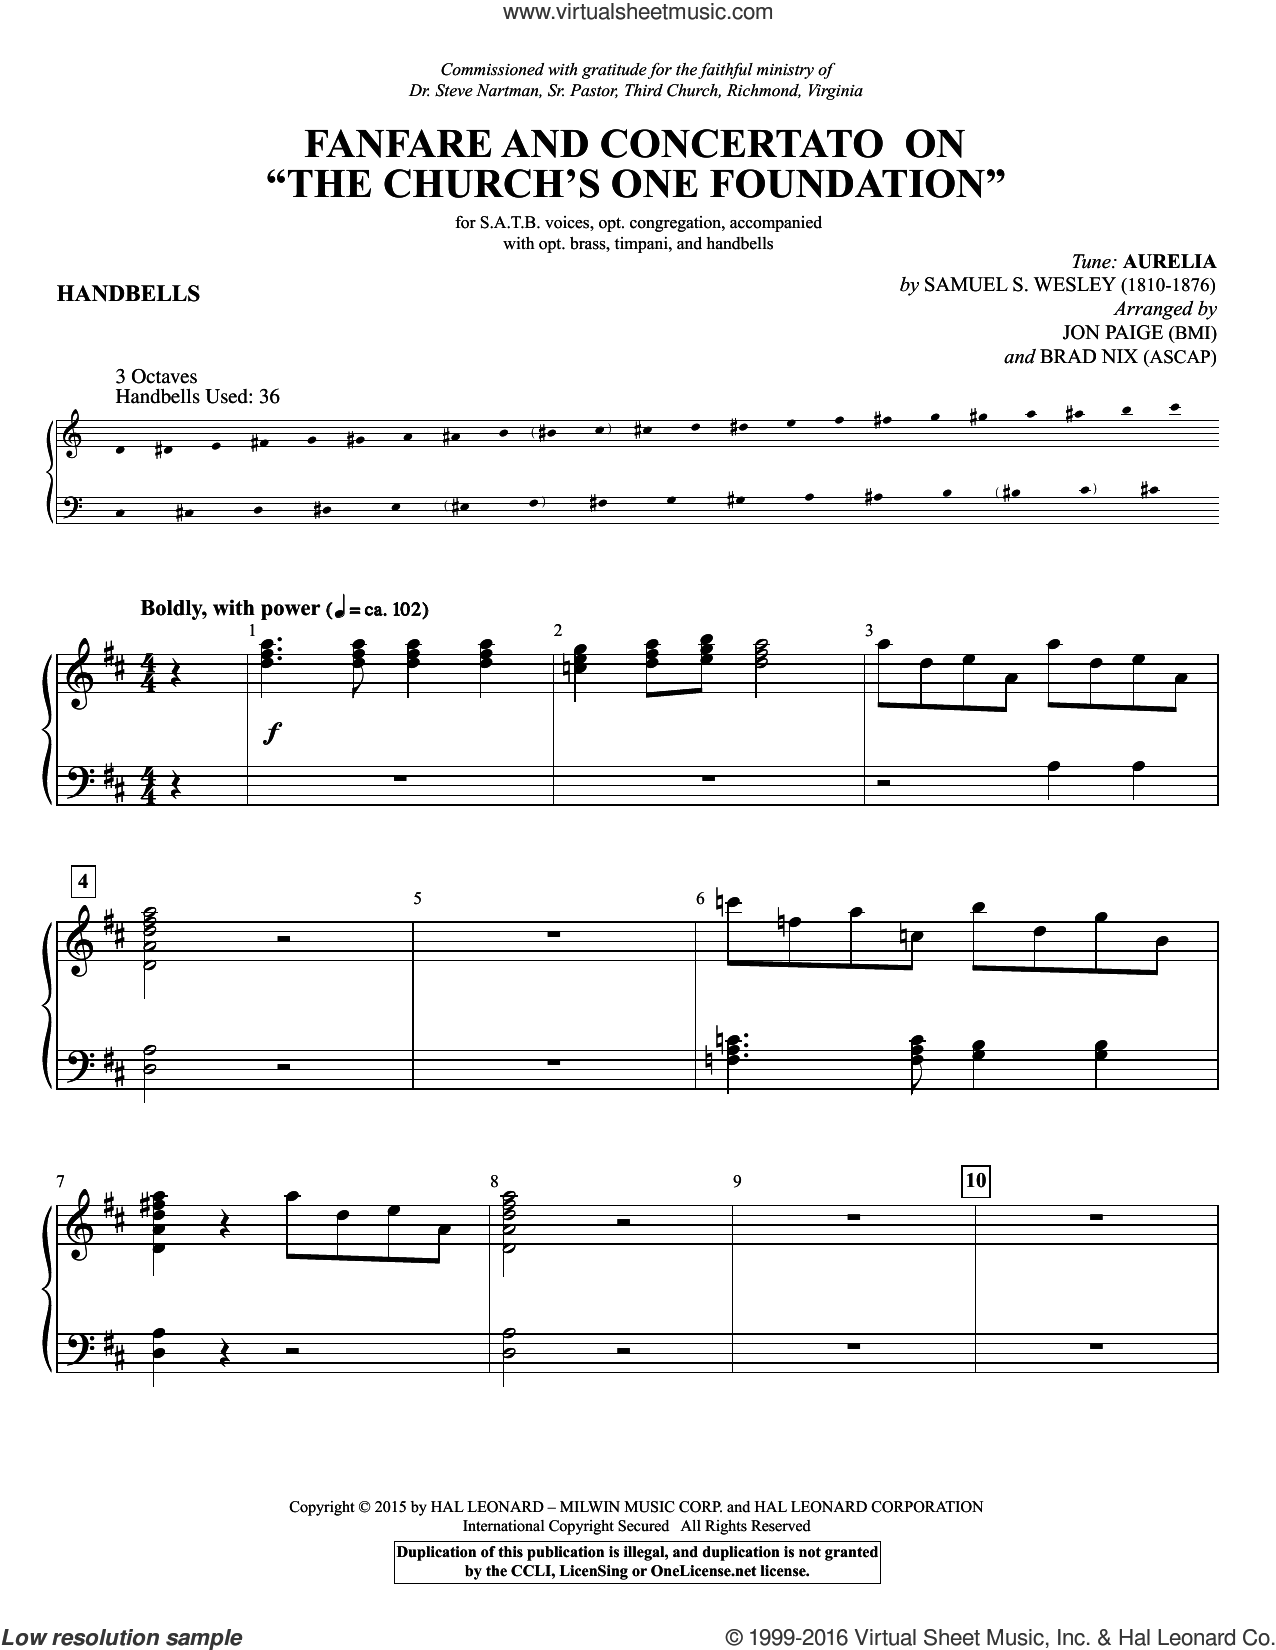 Fanfare and Concertato on 'The Church's One Foundation' sheet music for orchestra/band (handbells) by Samuel Sebastian Wesley, Brad Nix, Jon Paige, Samuel J. Stone, Samuel S. Wesley and Samuel John Stone, classical wedding score, intermediate skill level